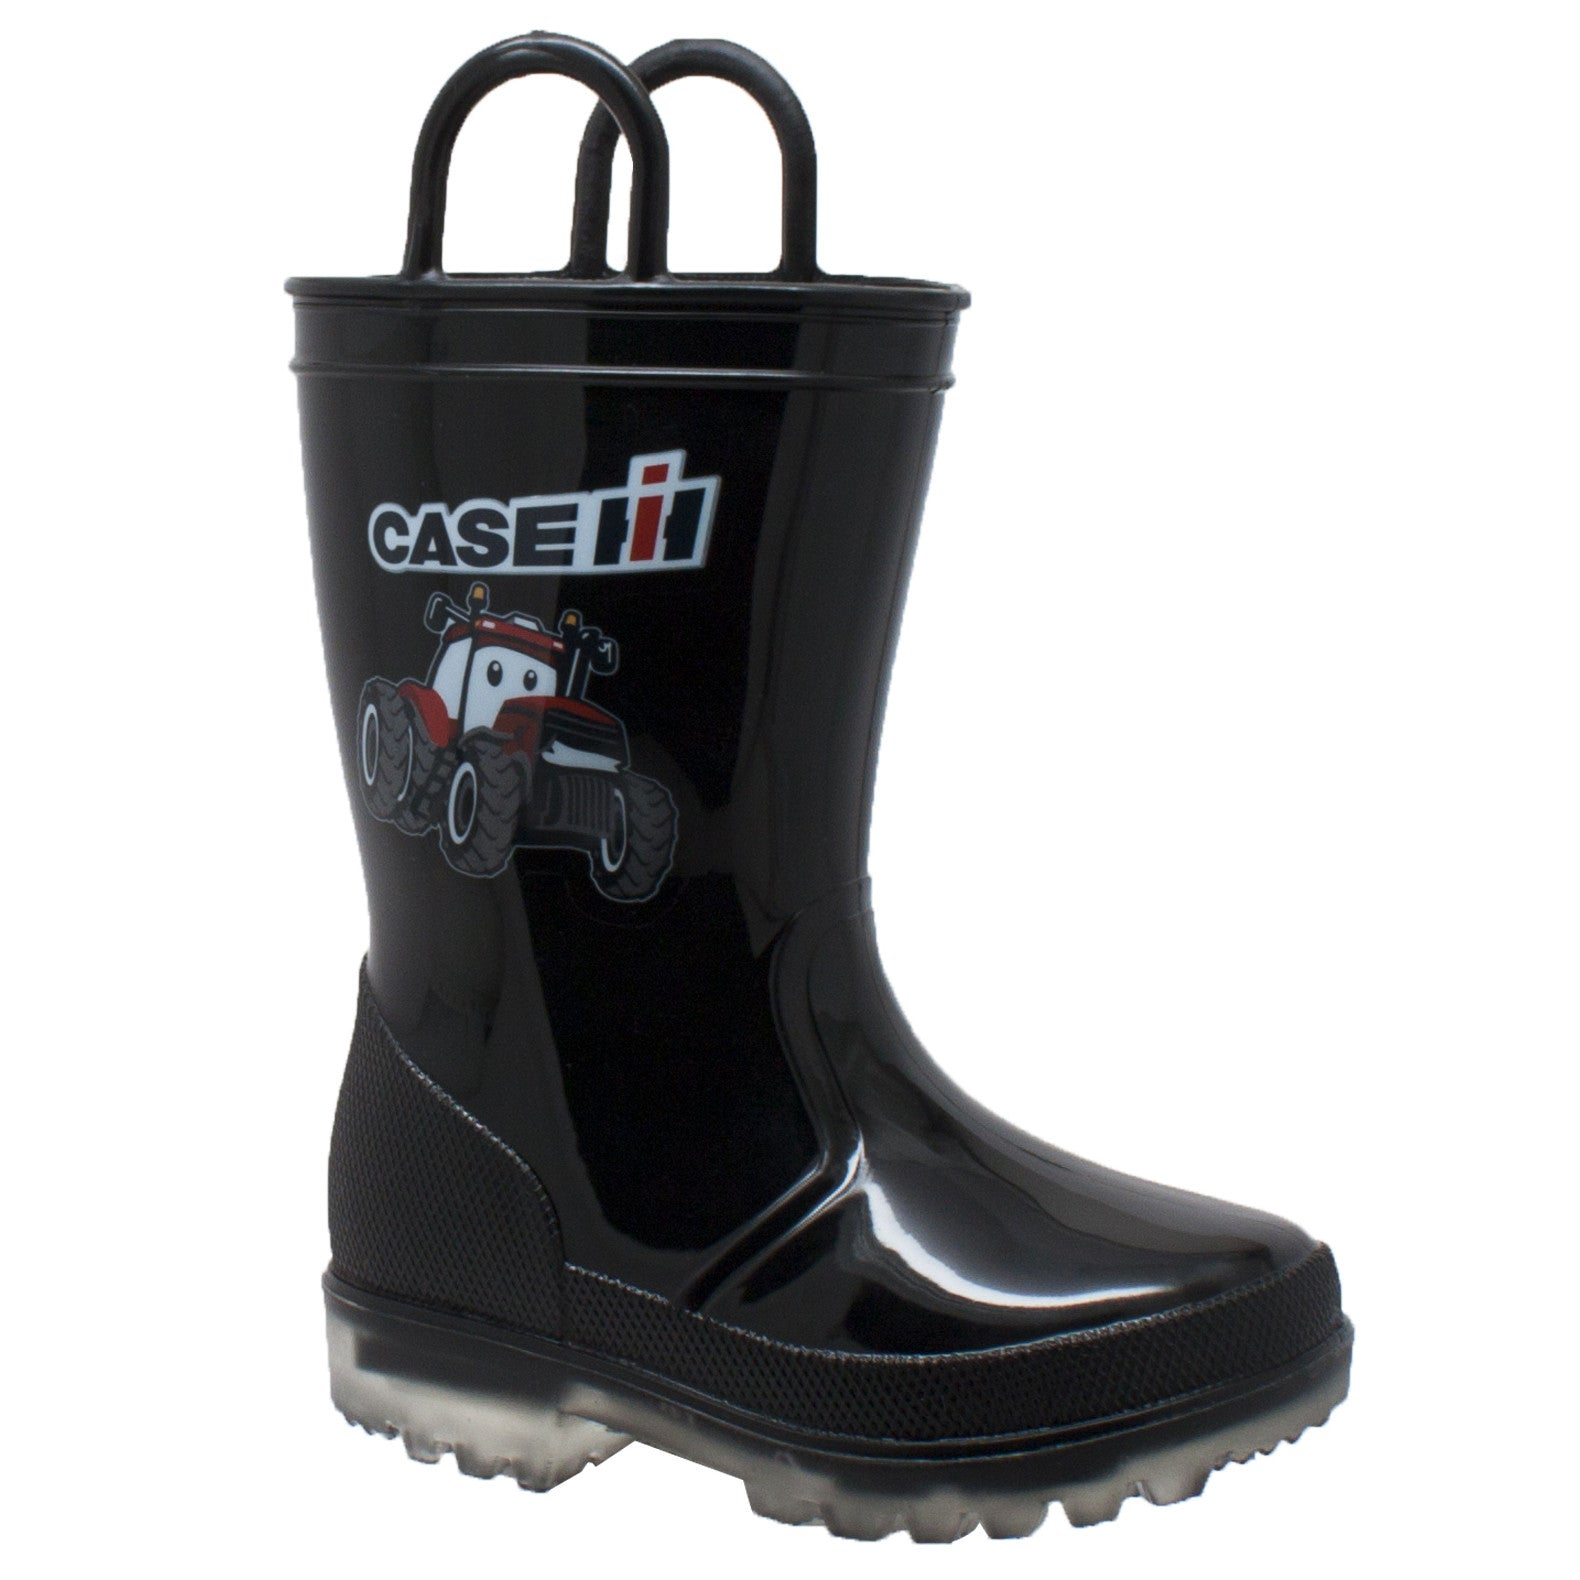 Children's PVC Boot with Light-Up Outsole Black - CI-4008 - Shop Genuine Leather men & women's boots online | AdTecFootWear